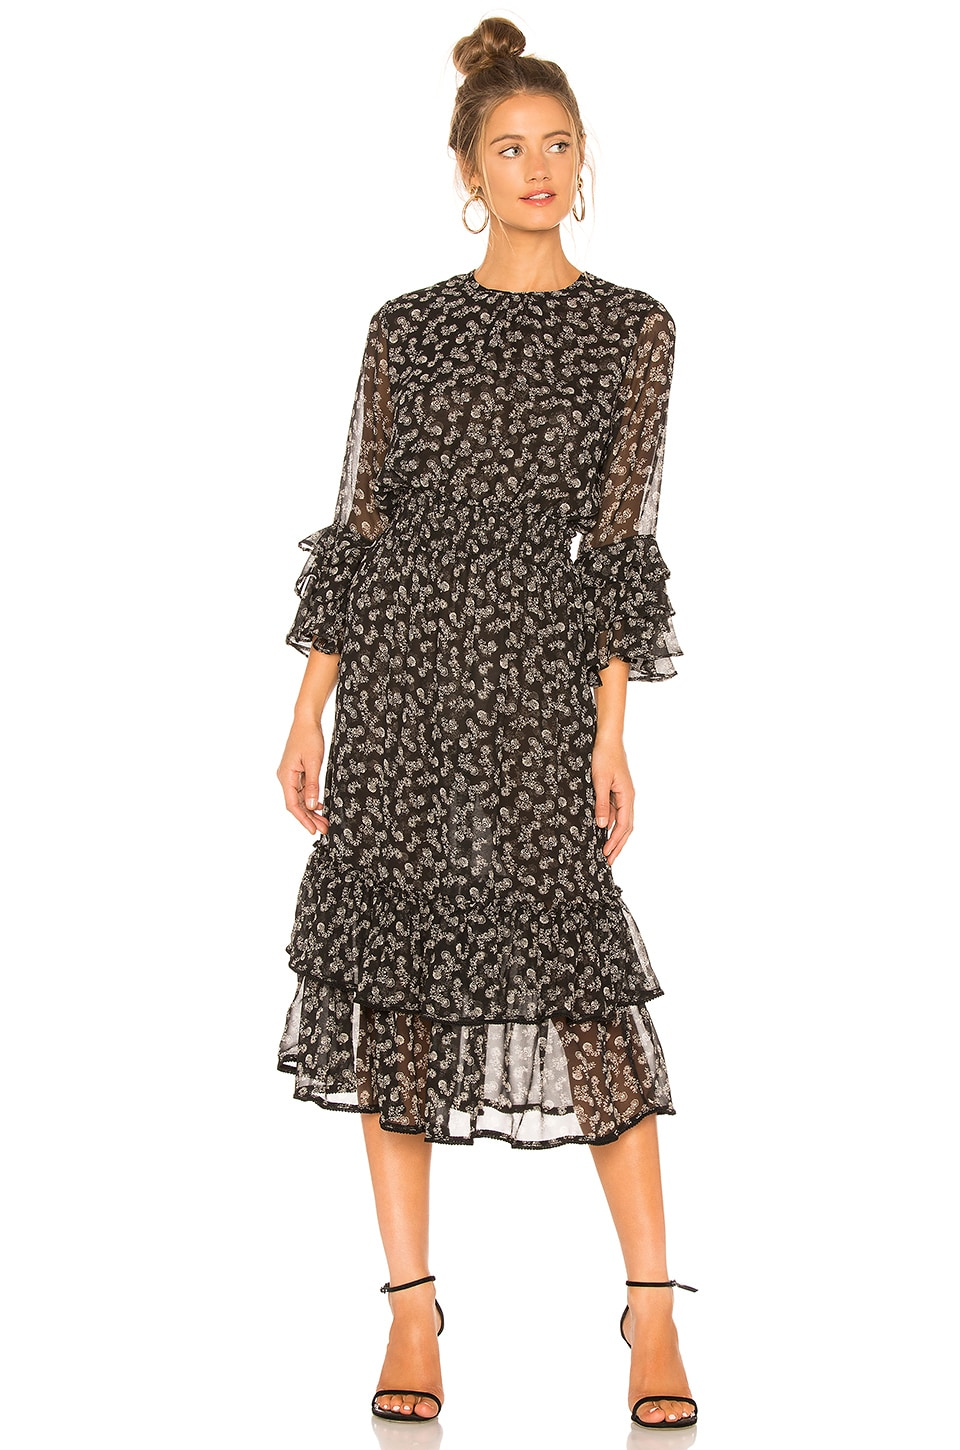 Misa MISA LOS ANGELES GORDANA DRESS IN BLACK FLORAL